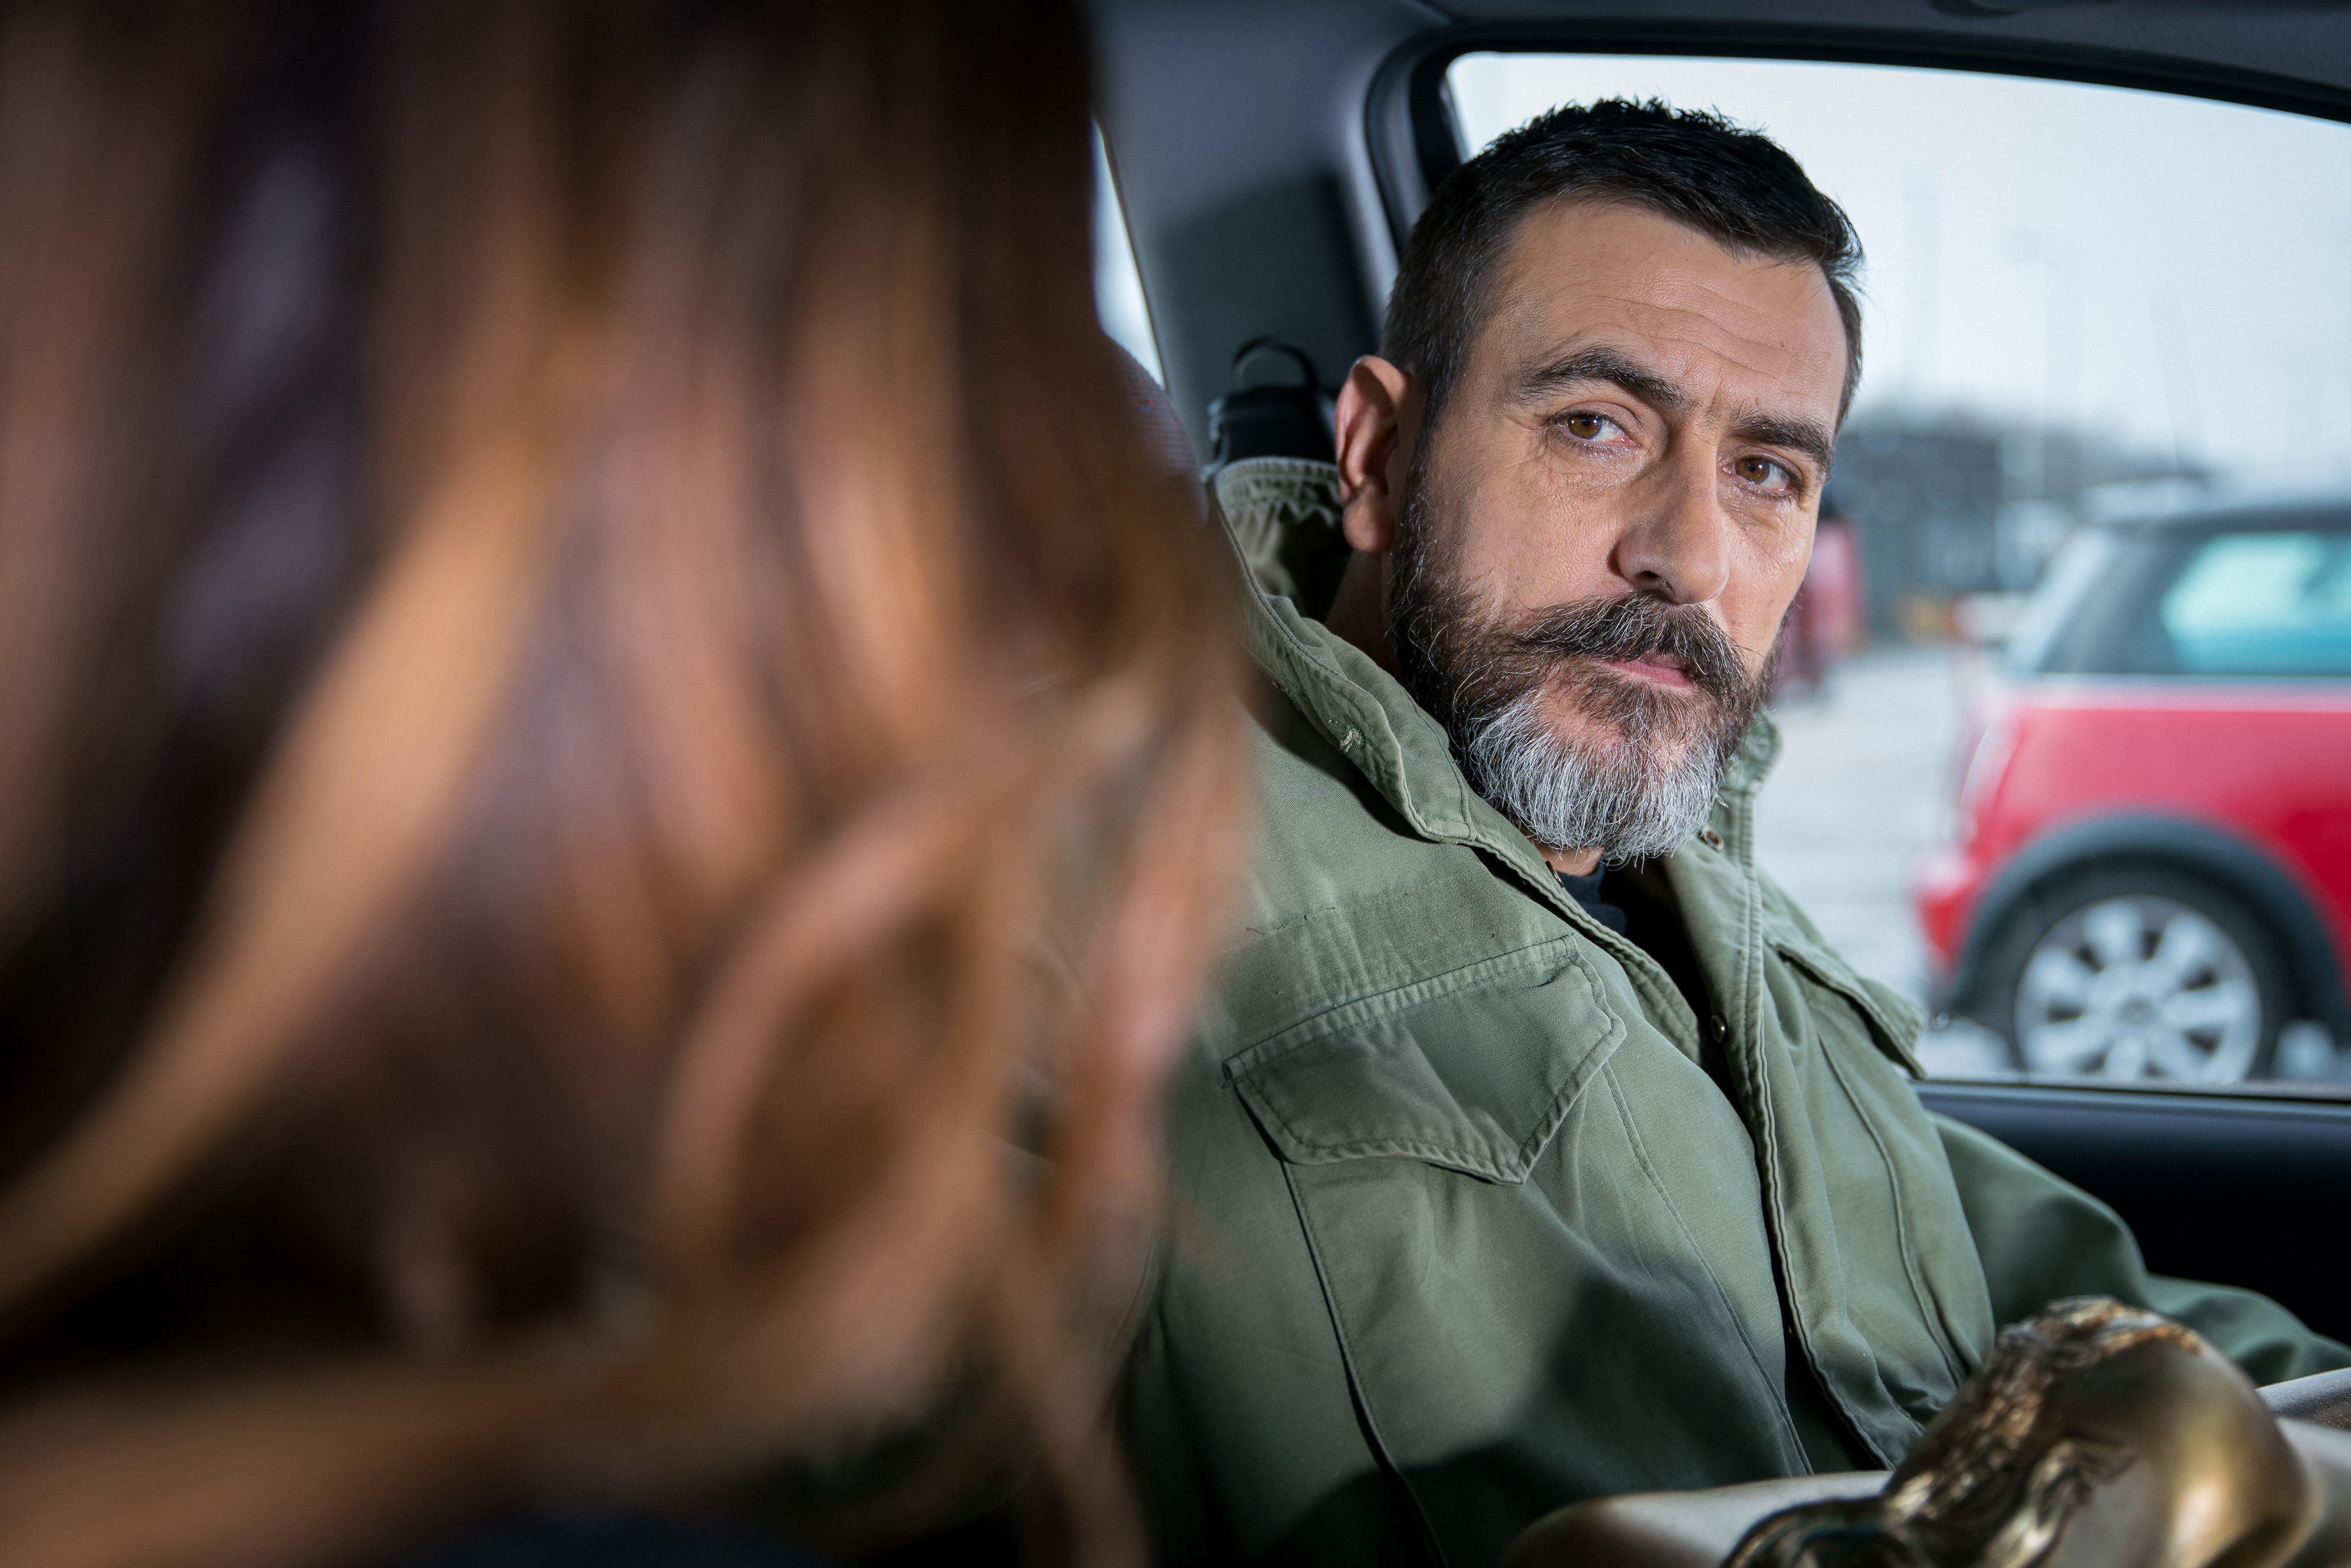 Coronation Street spoilers: Shock exit for Peter Barlow after Carla Connor rejection?